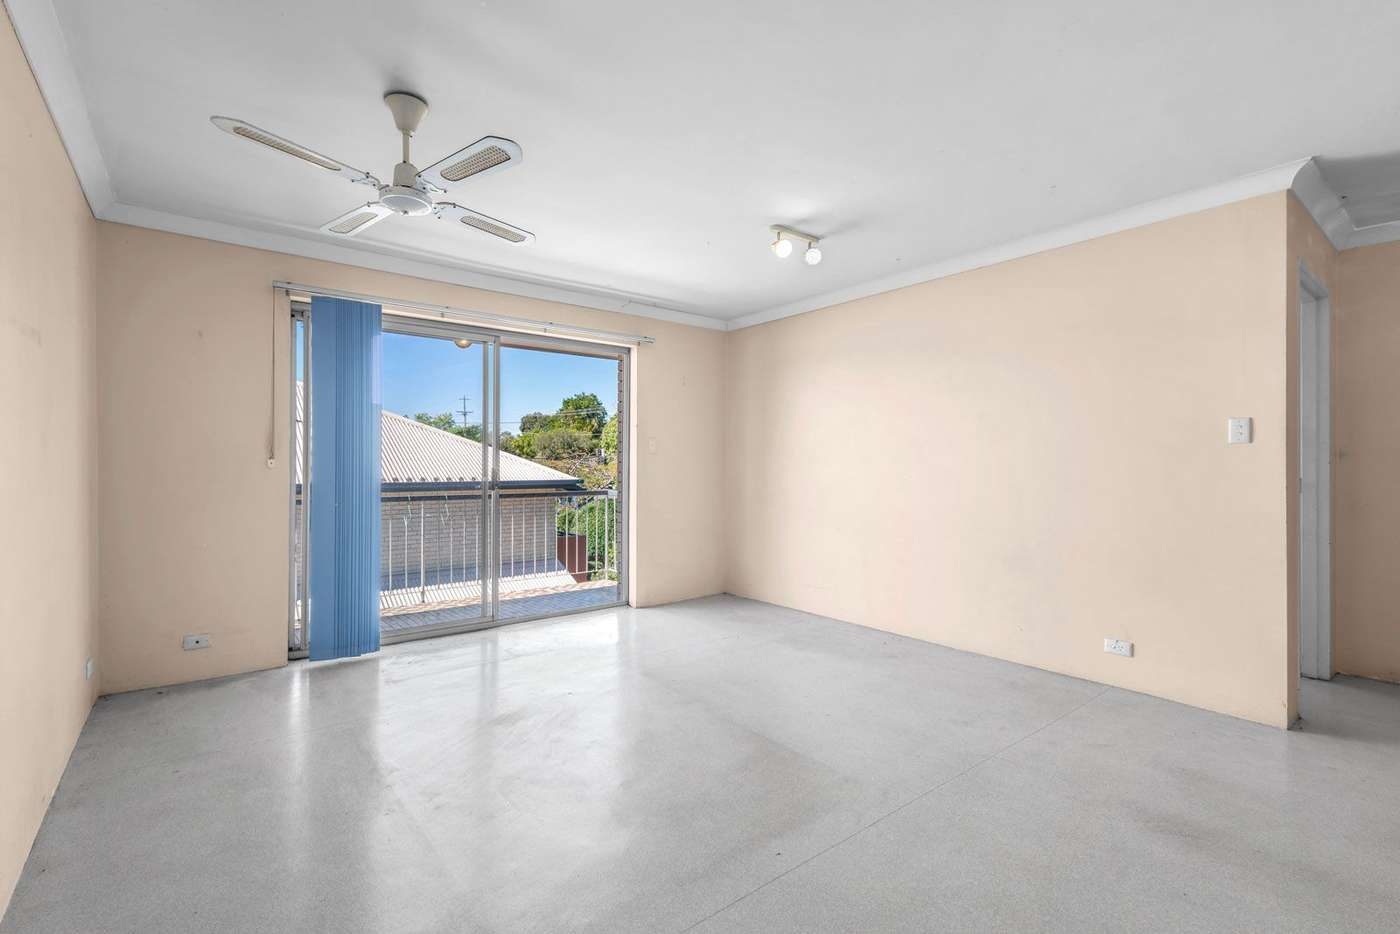 Sixth view of Homely unit listing, 4/77 Erneton Street, Newmarket QLD 4051